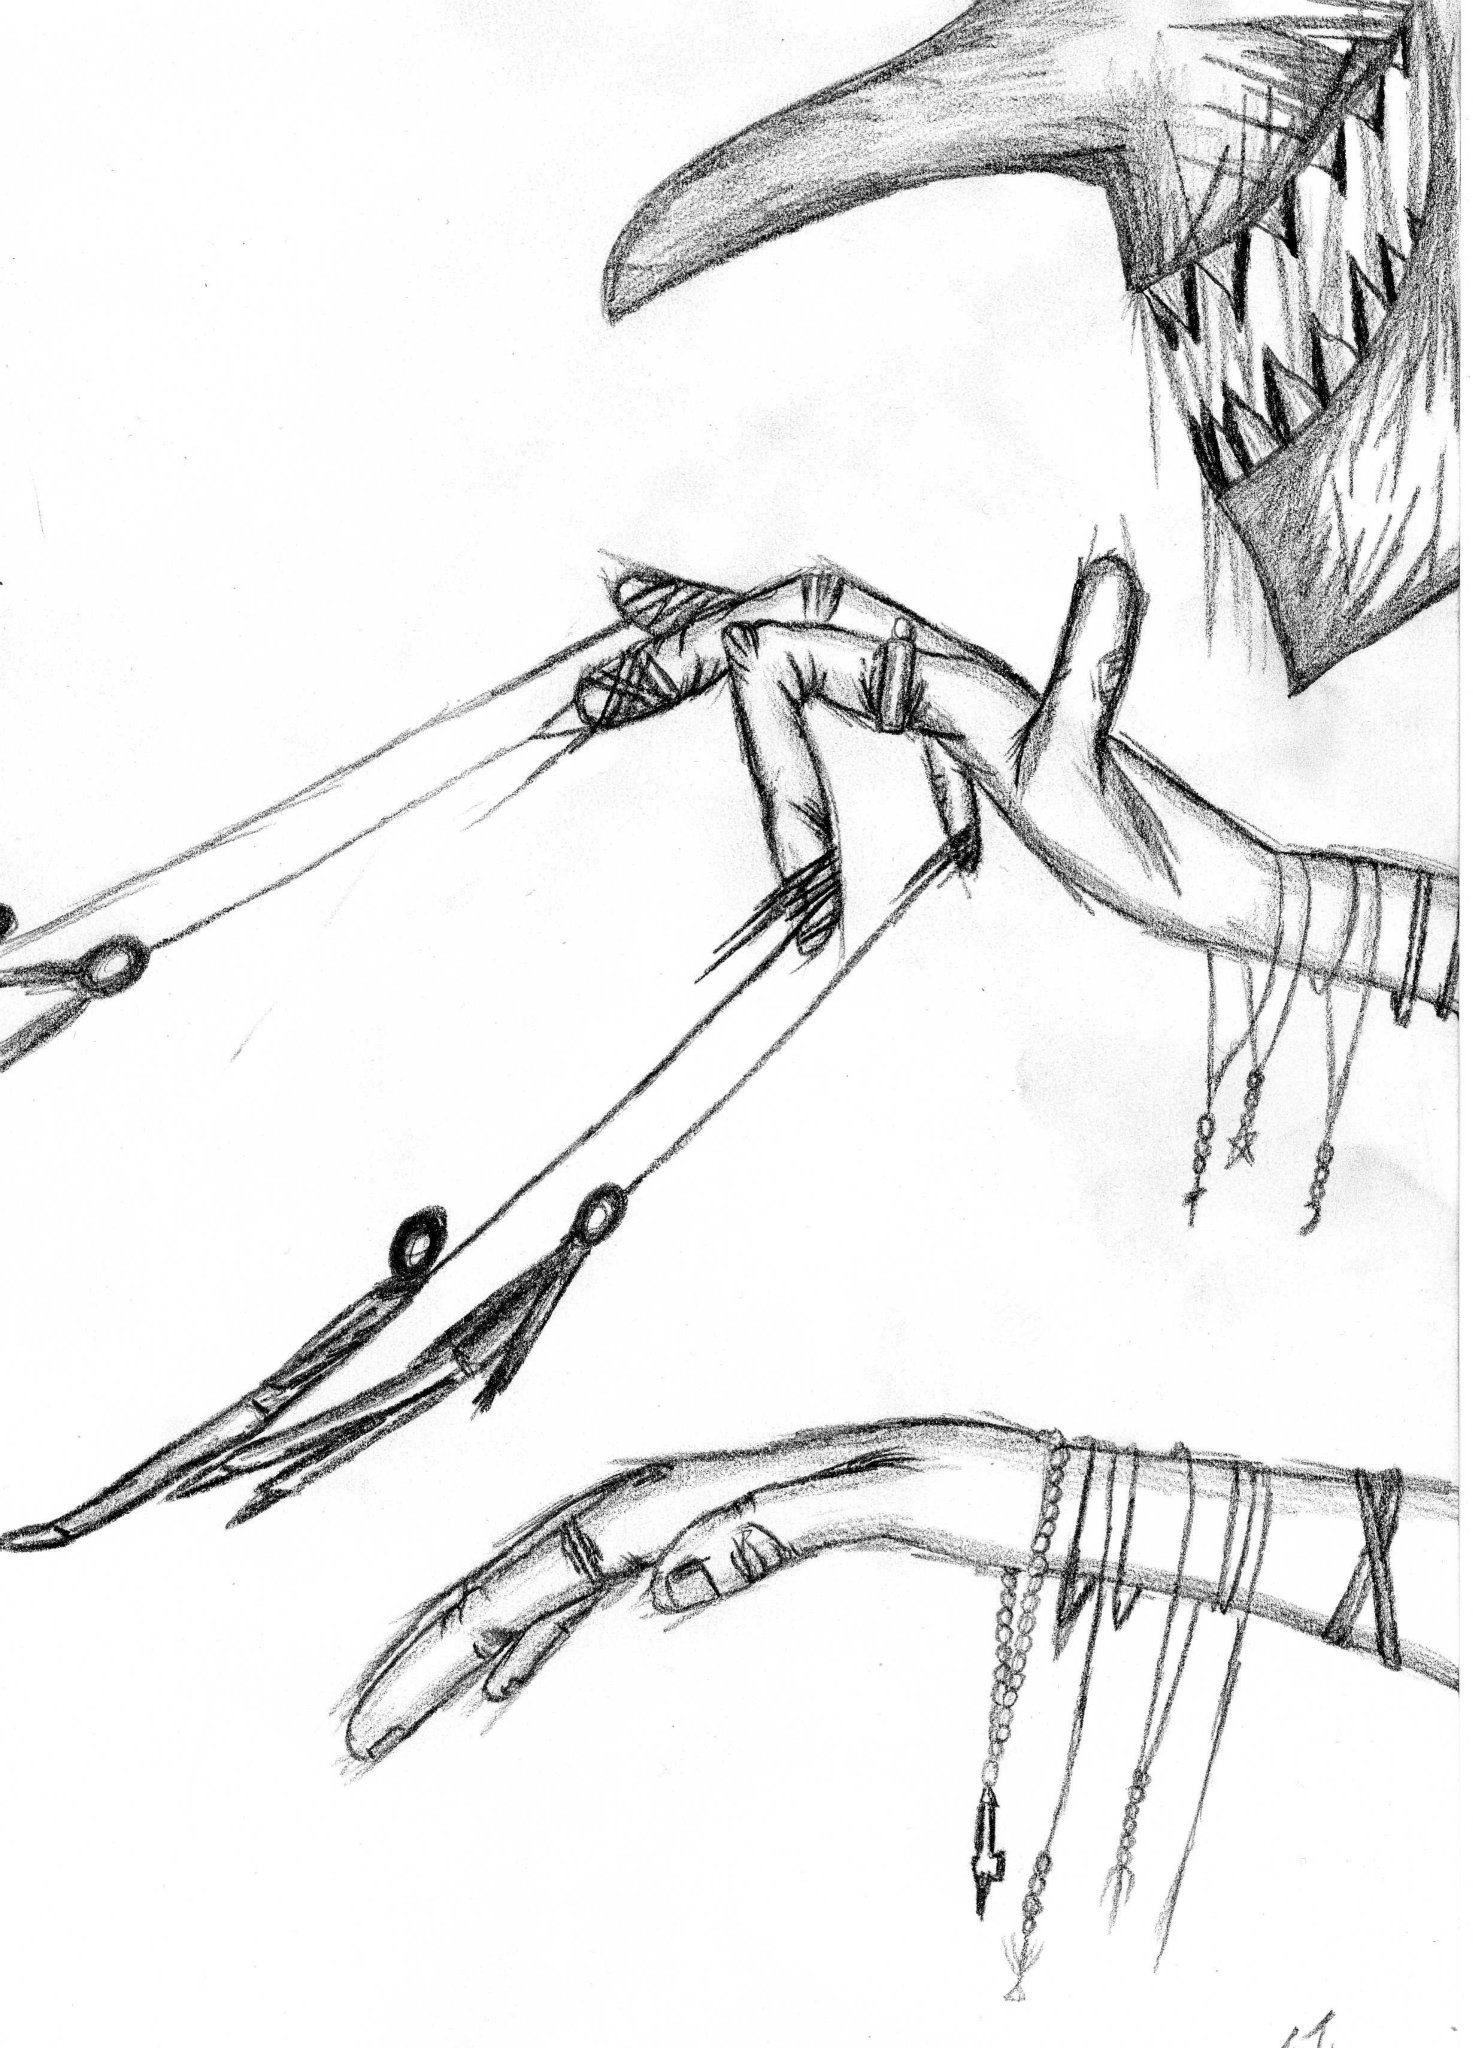 Puppeteer of death